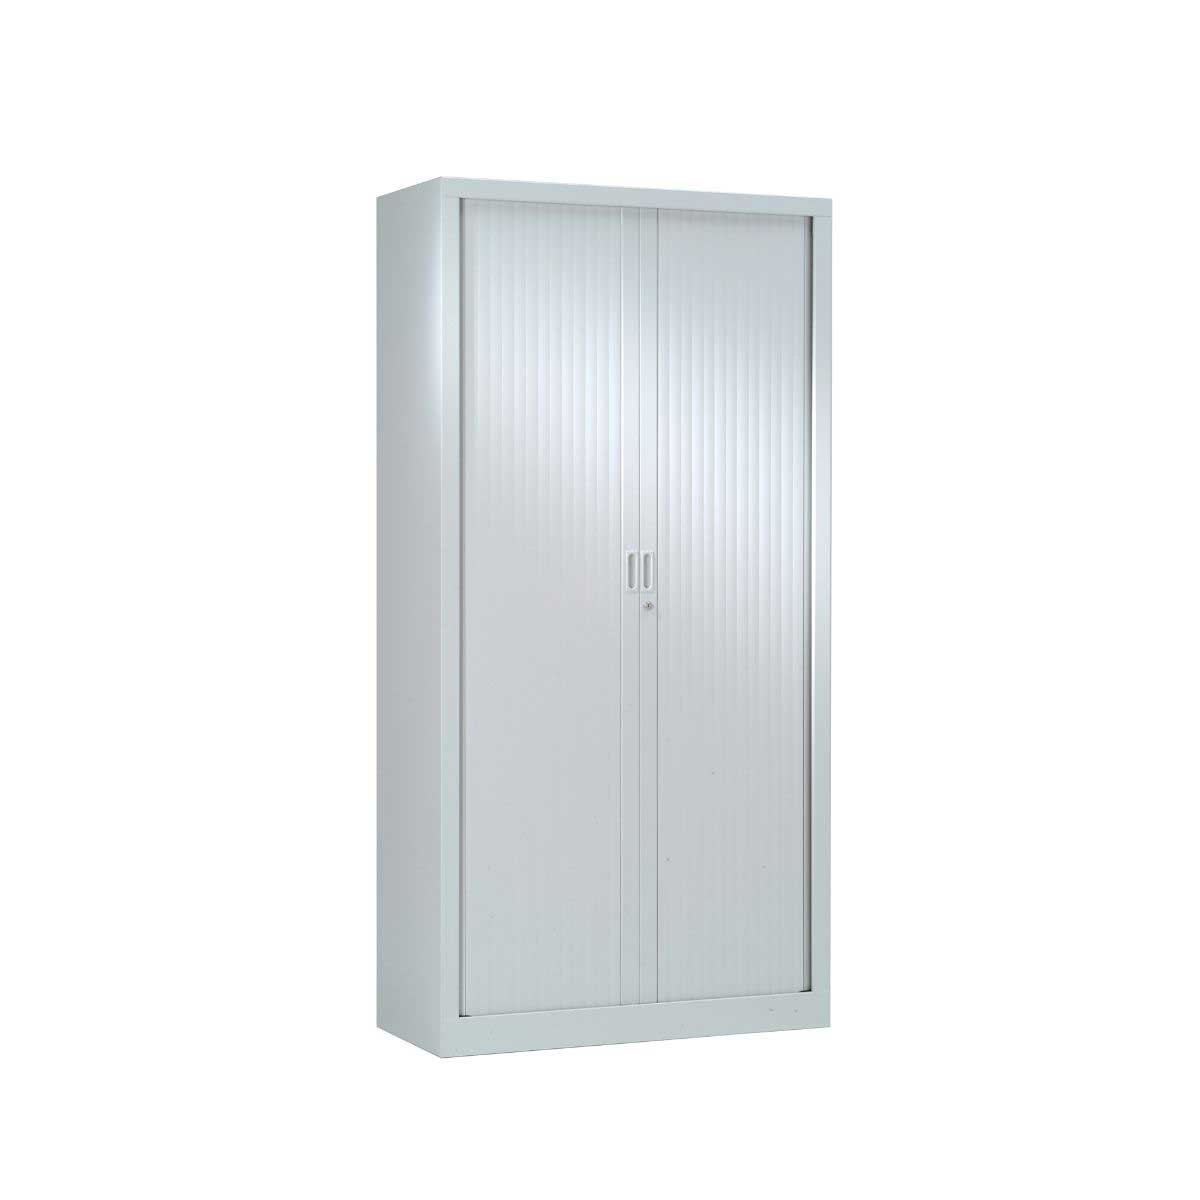 Generic Tambour Cupboard Height 1980mm, Silver